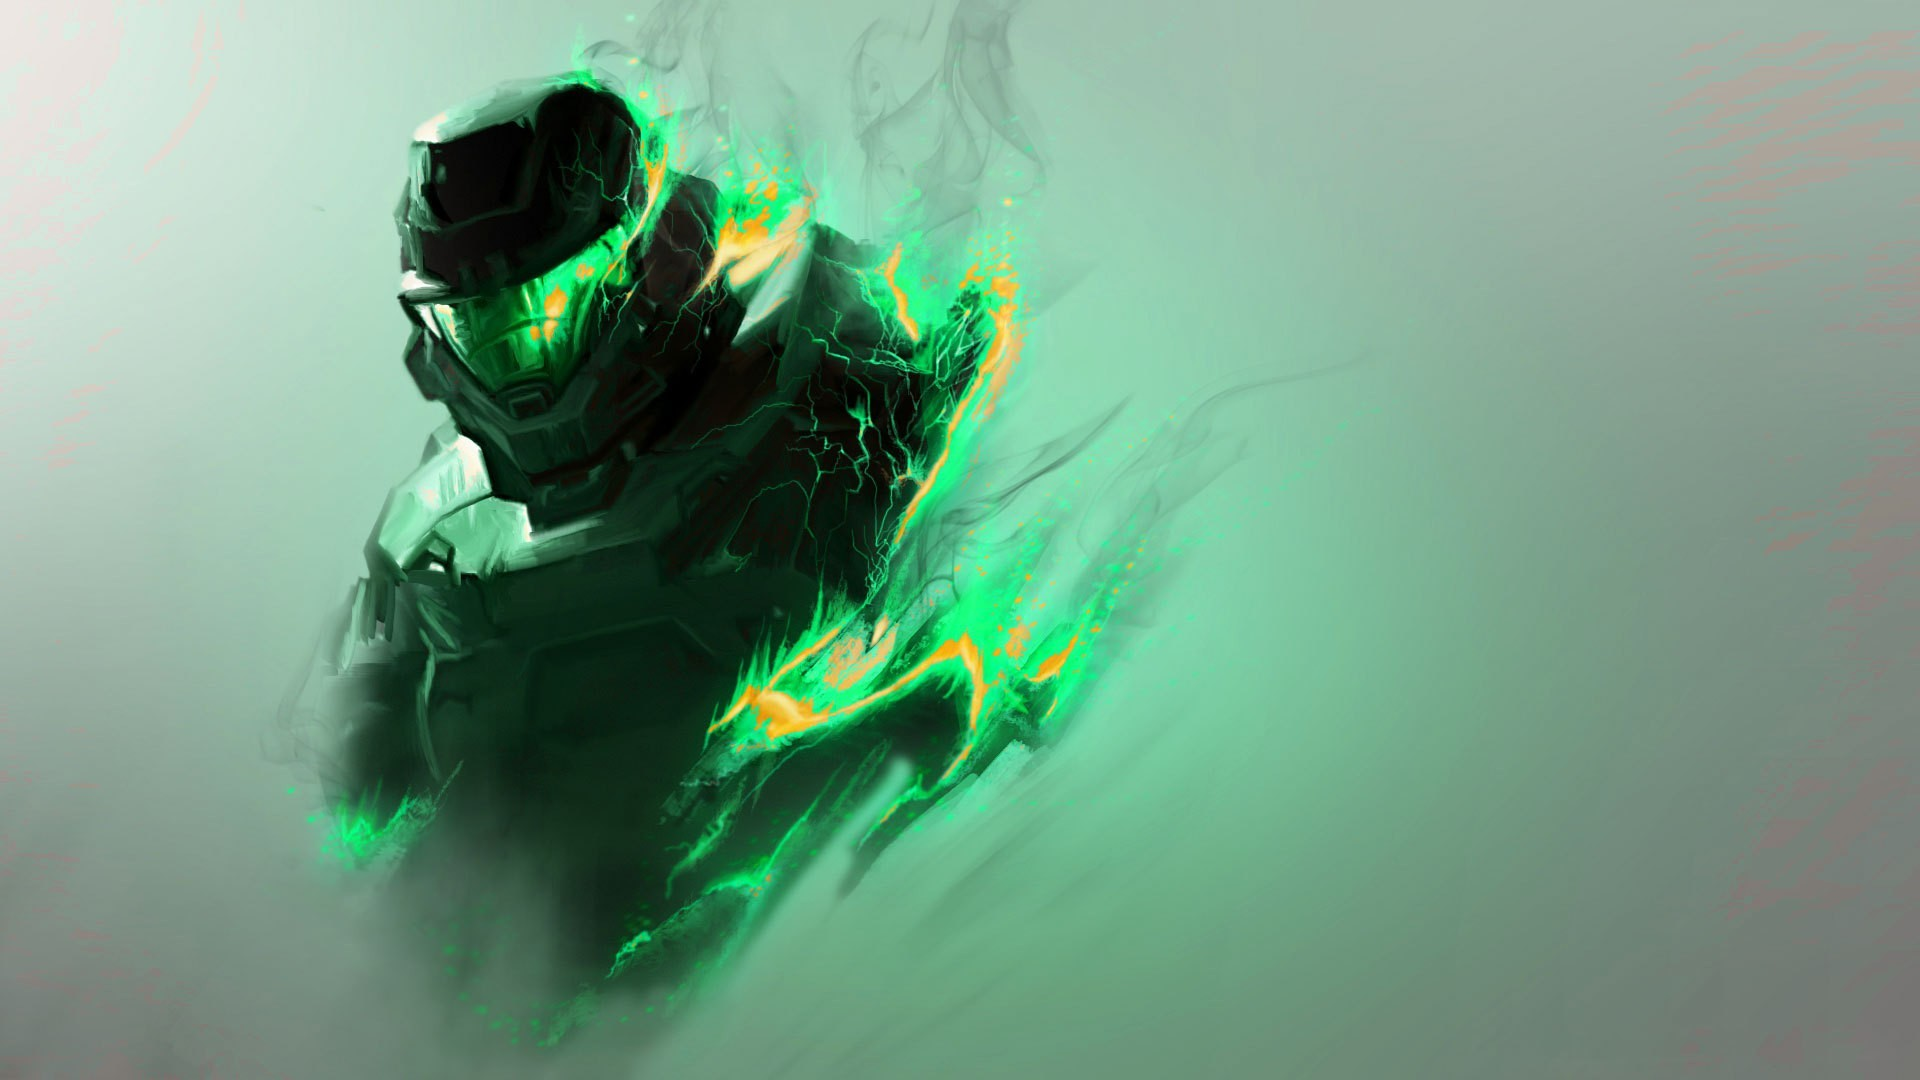 Master chief wallpaper 14720 1920x1080 px hdwallsource master chief wallpaper 14720 voltagebd Image collections